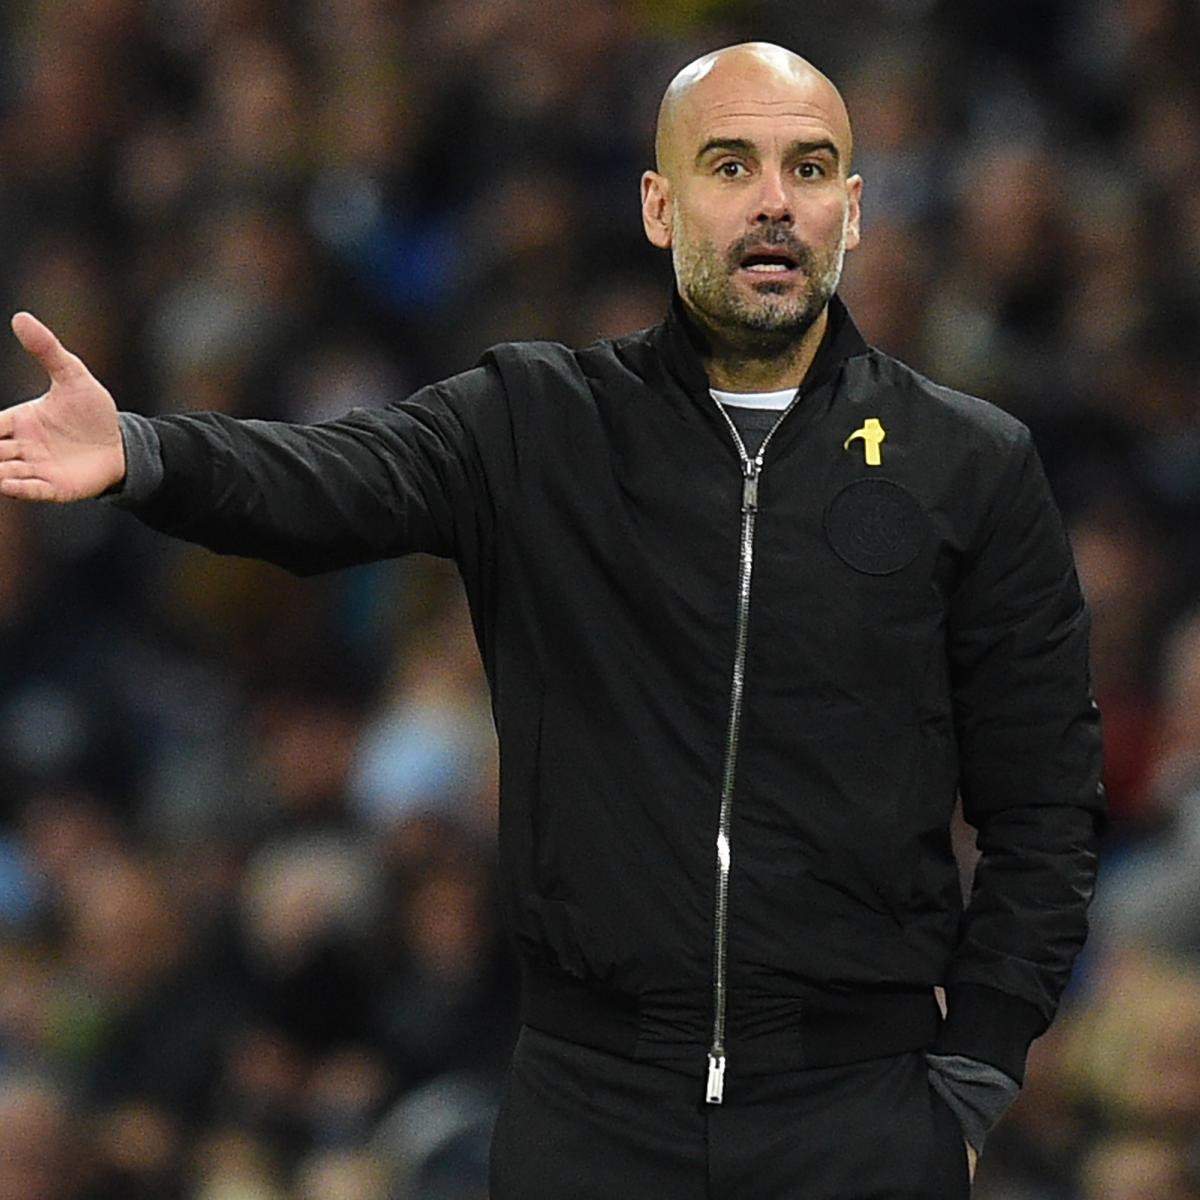 Man City 'Needed to Lose,' Says Pep Guardiola After Shakhtar Donetsk Defeat